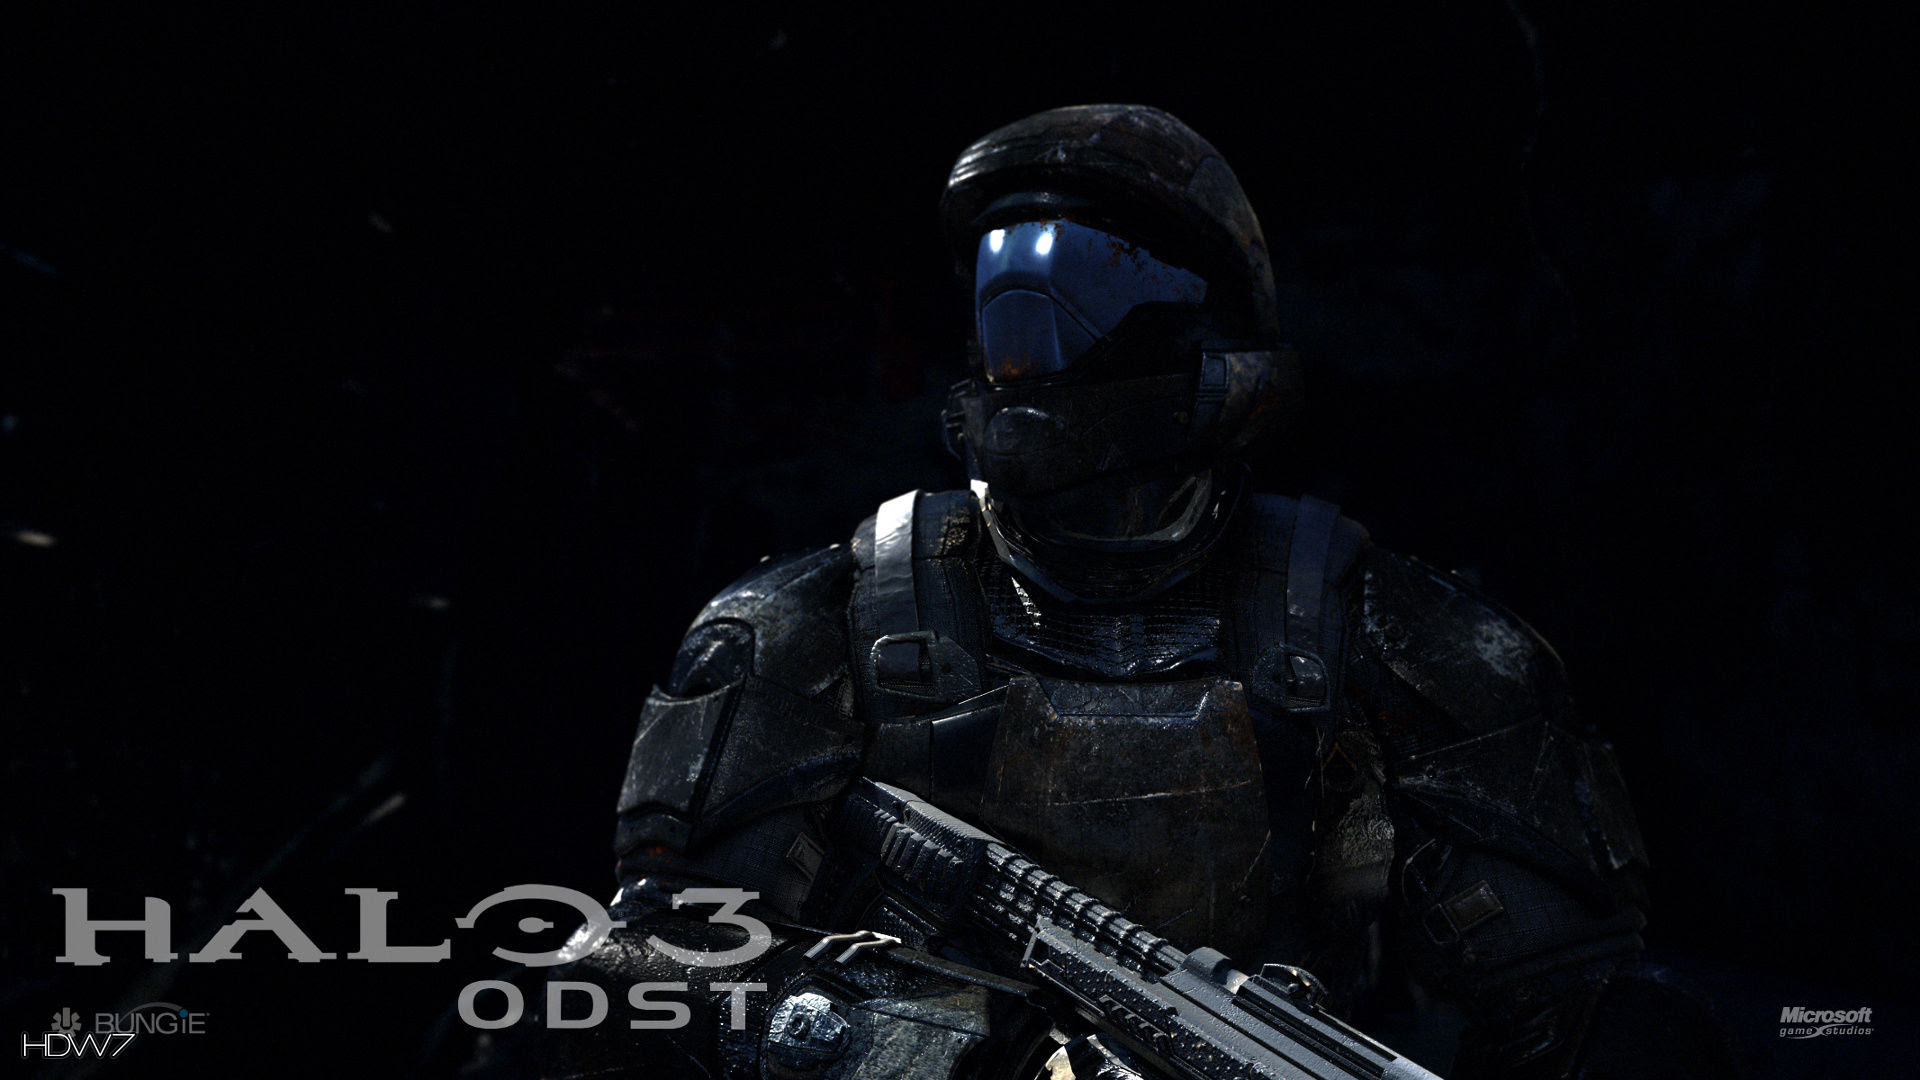 Halo 3 Odst Proceed With Caution Widescreen Hd Wallpaper Hd